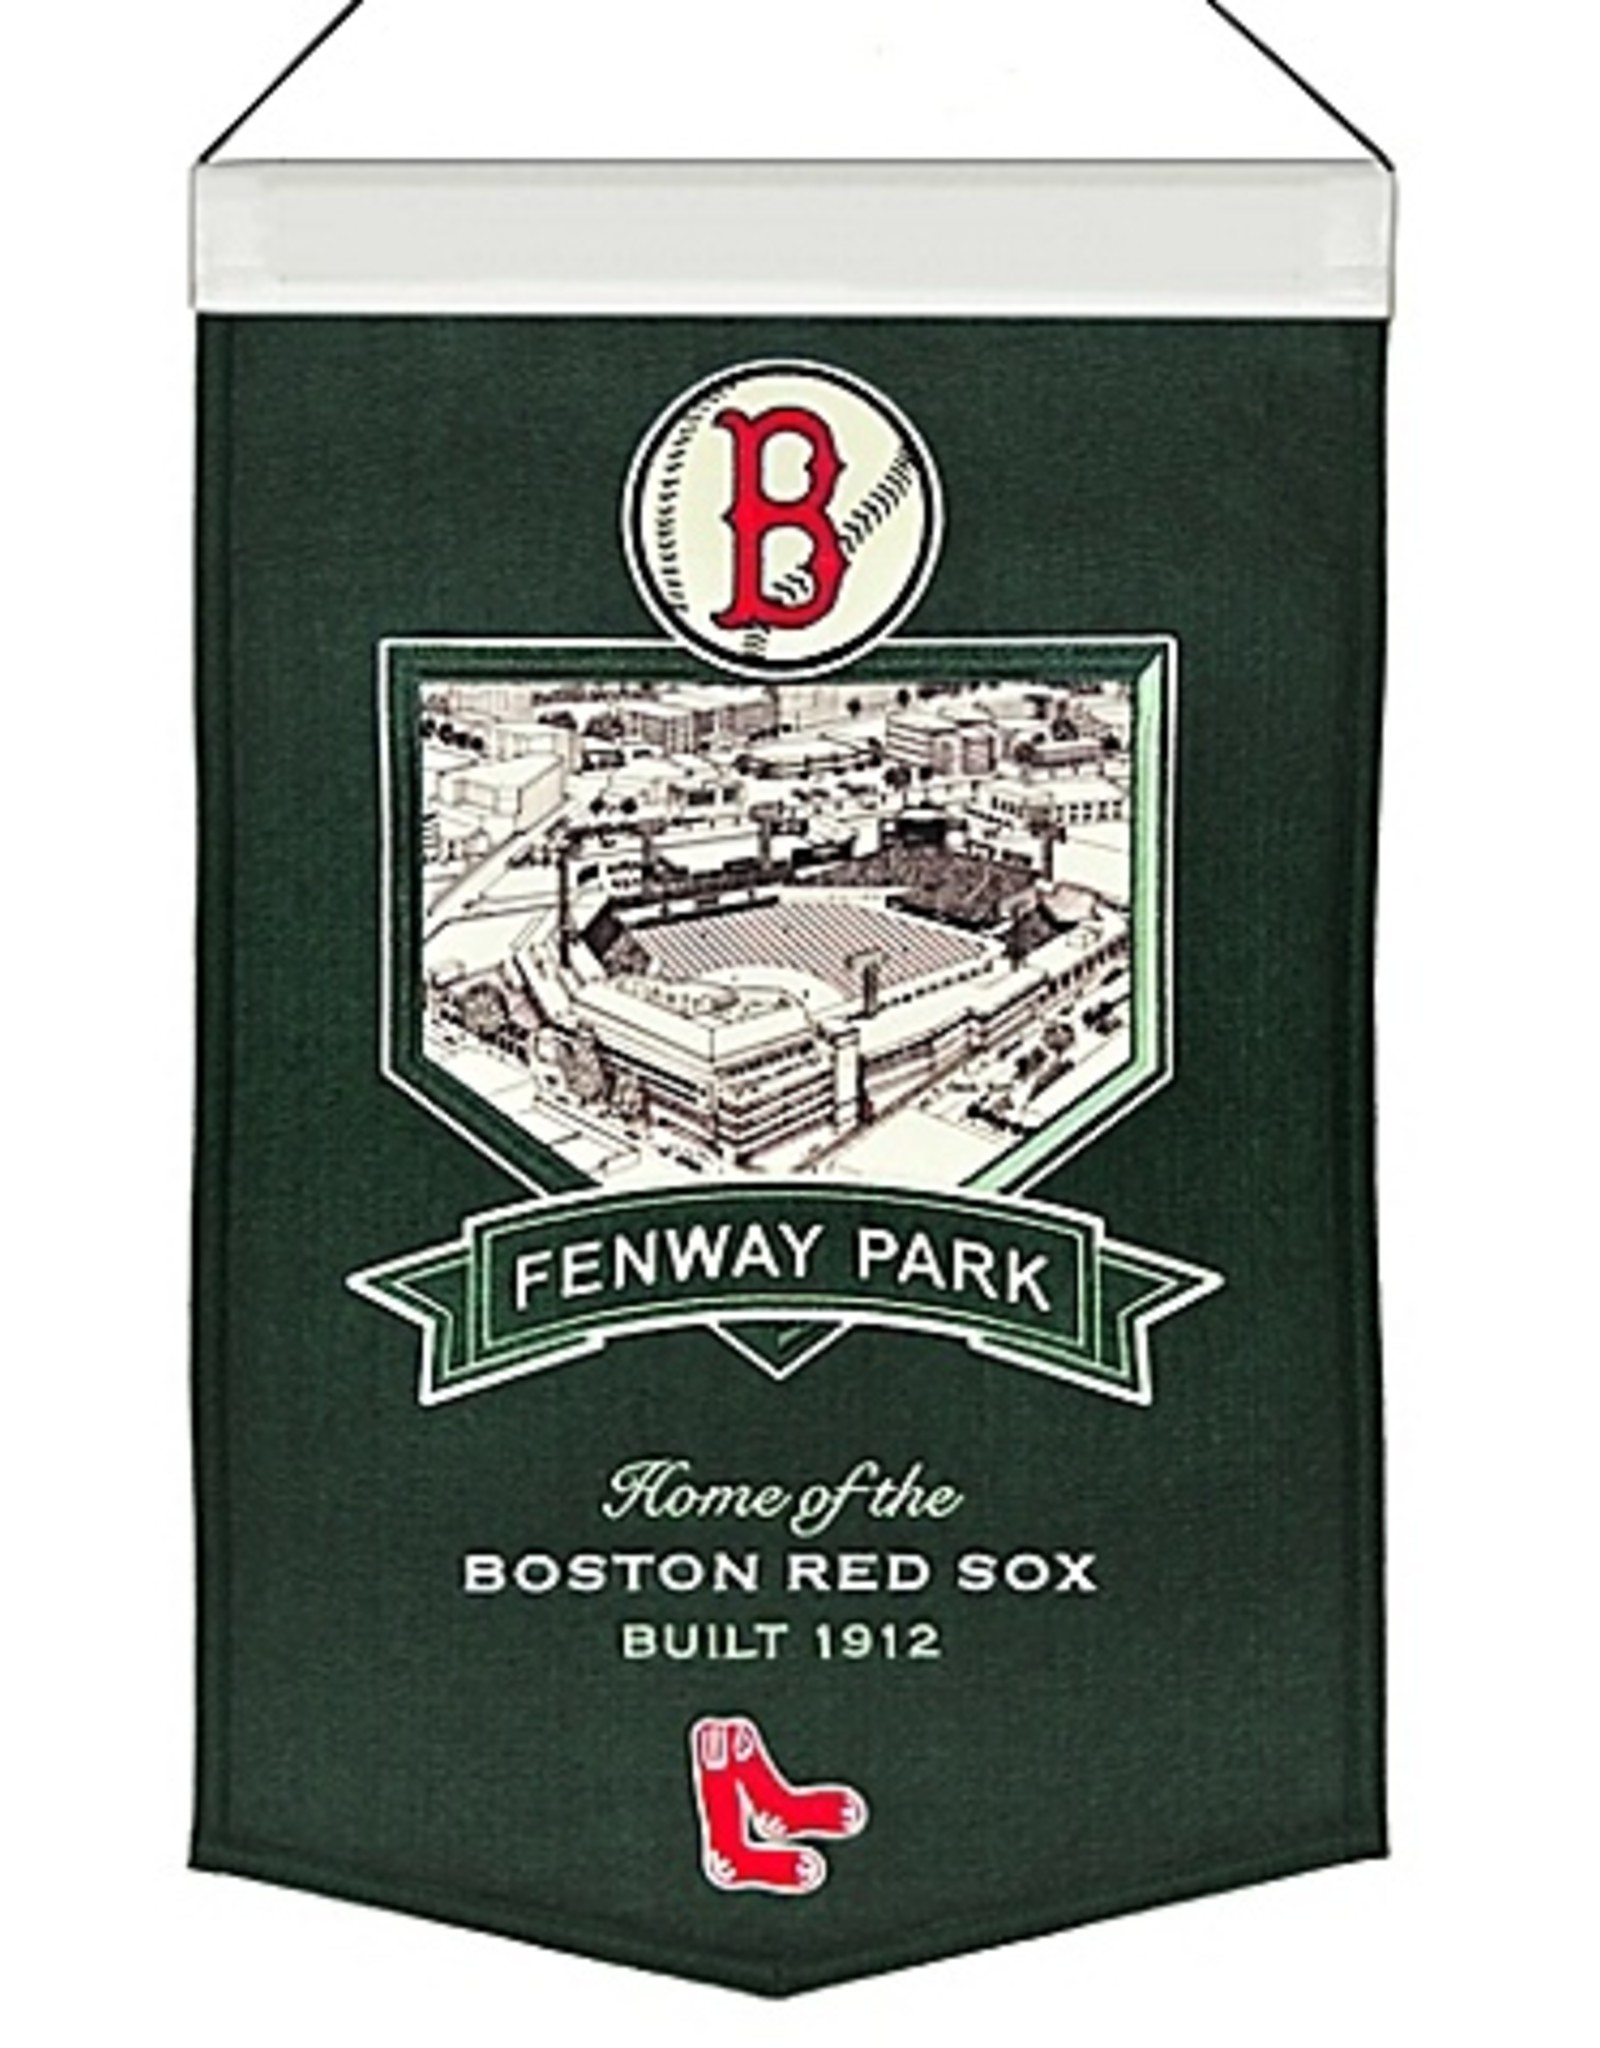 Boston Red Sox Fenway Park Stadium Banner